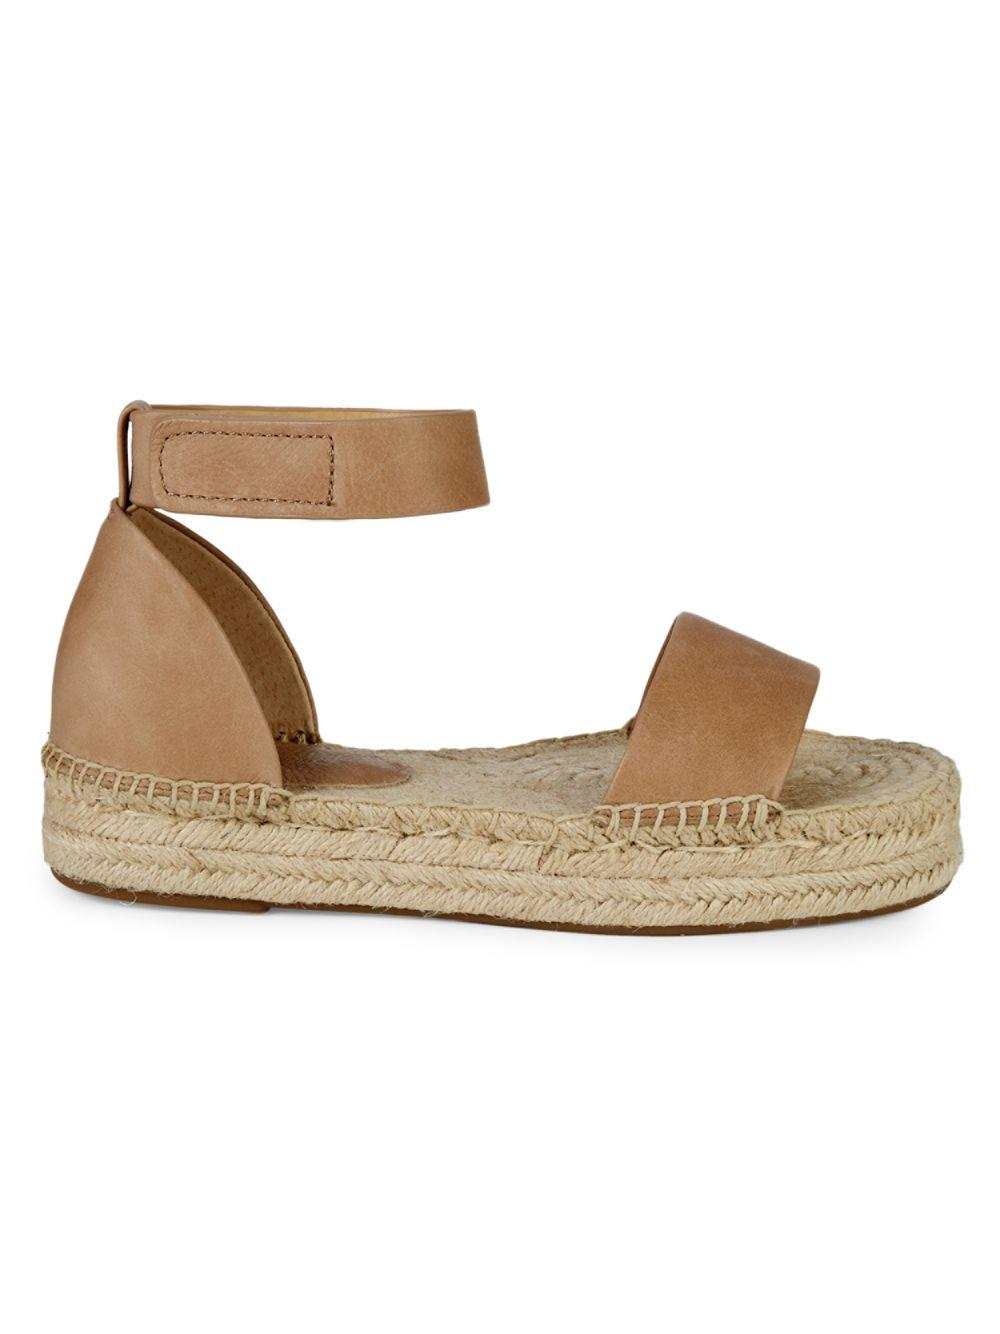 5875015e217 Splendid. Women s Jensen Leather Flat Espadrilles